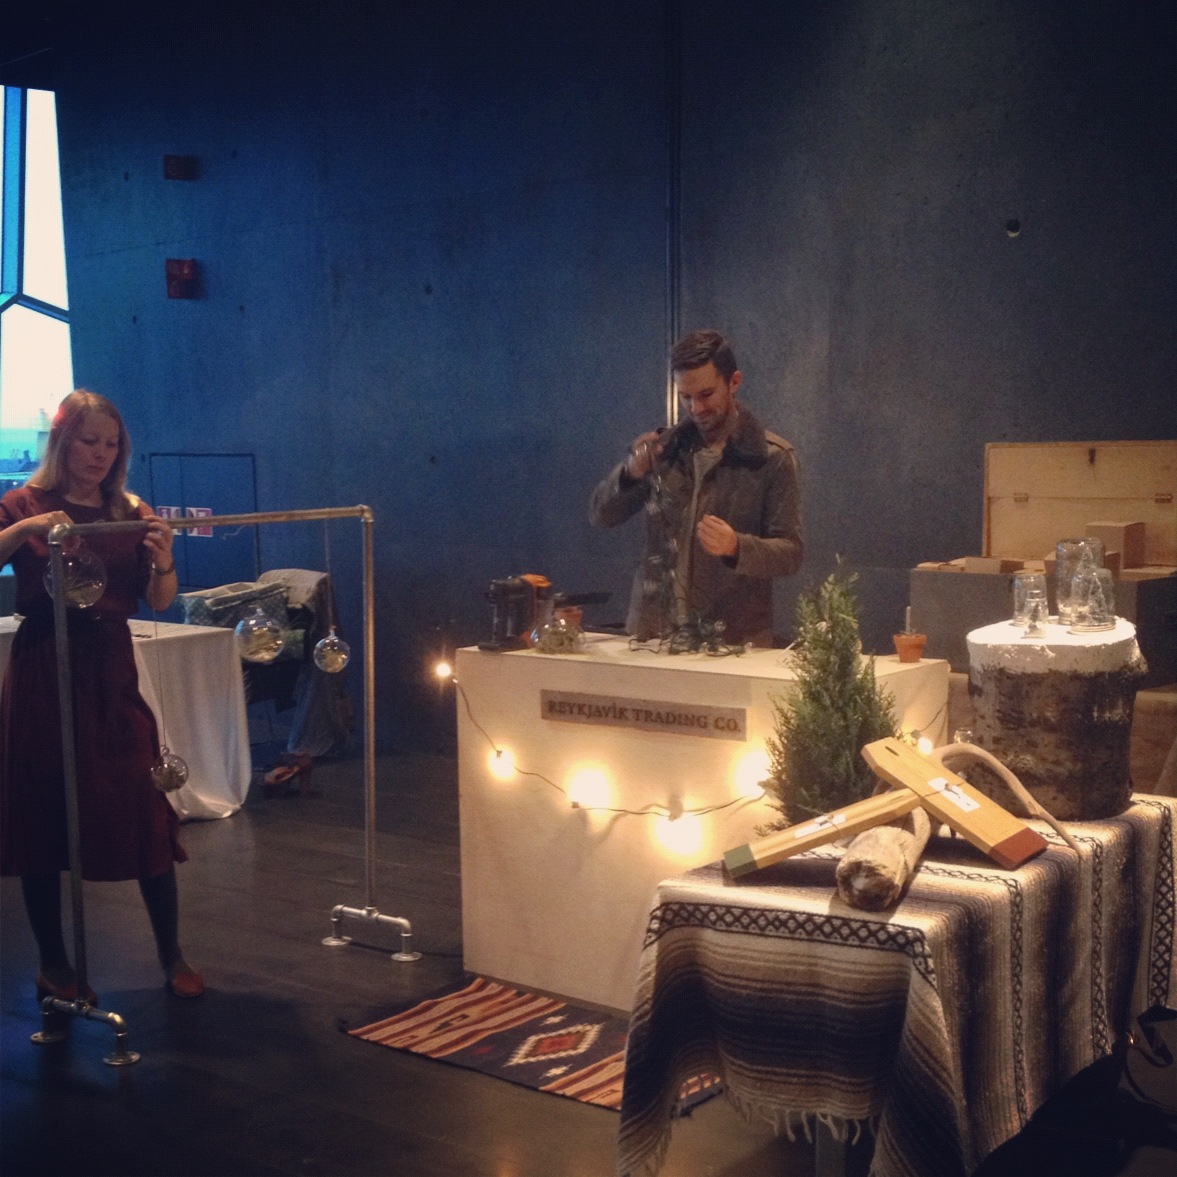 Setting up our little Reykjavík Trading Co. shop for the Christmas Popup Market in Iceland!